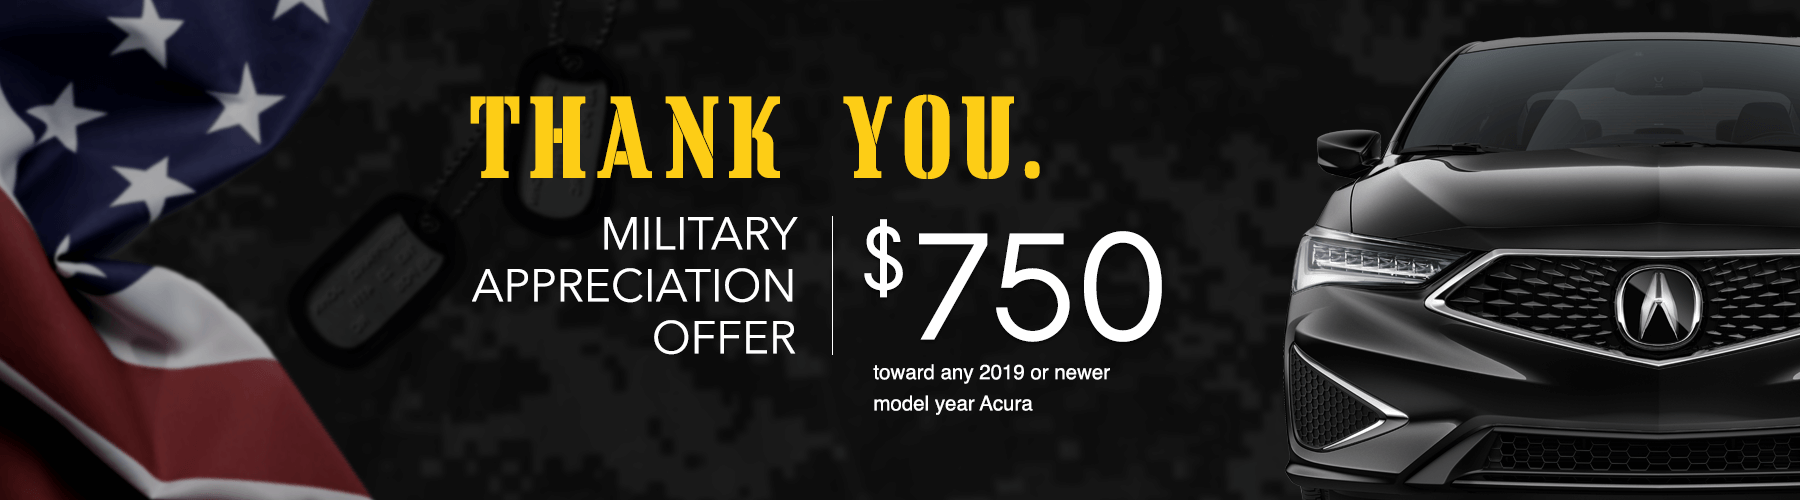 2019 Acura Military Appreciation Offer Banner